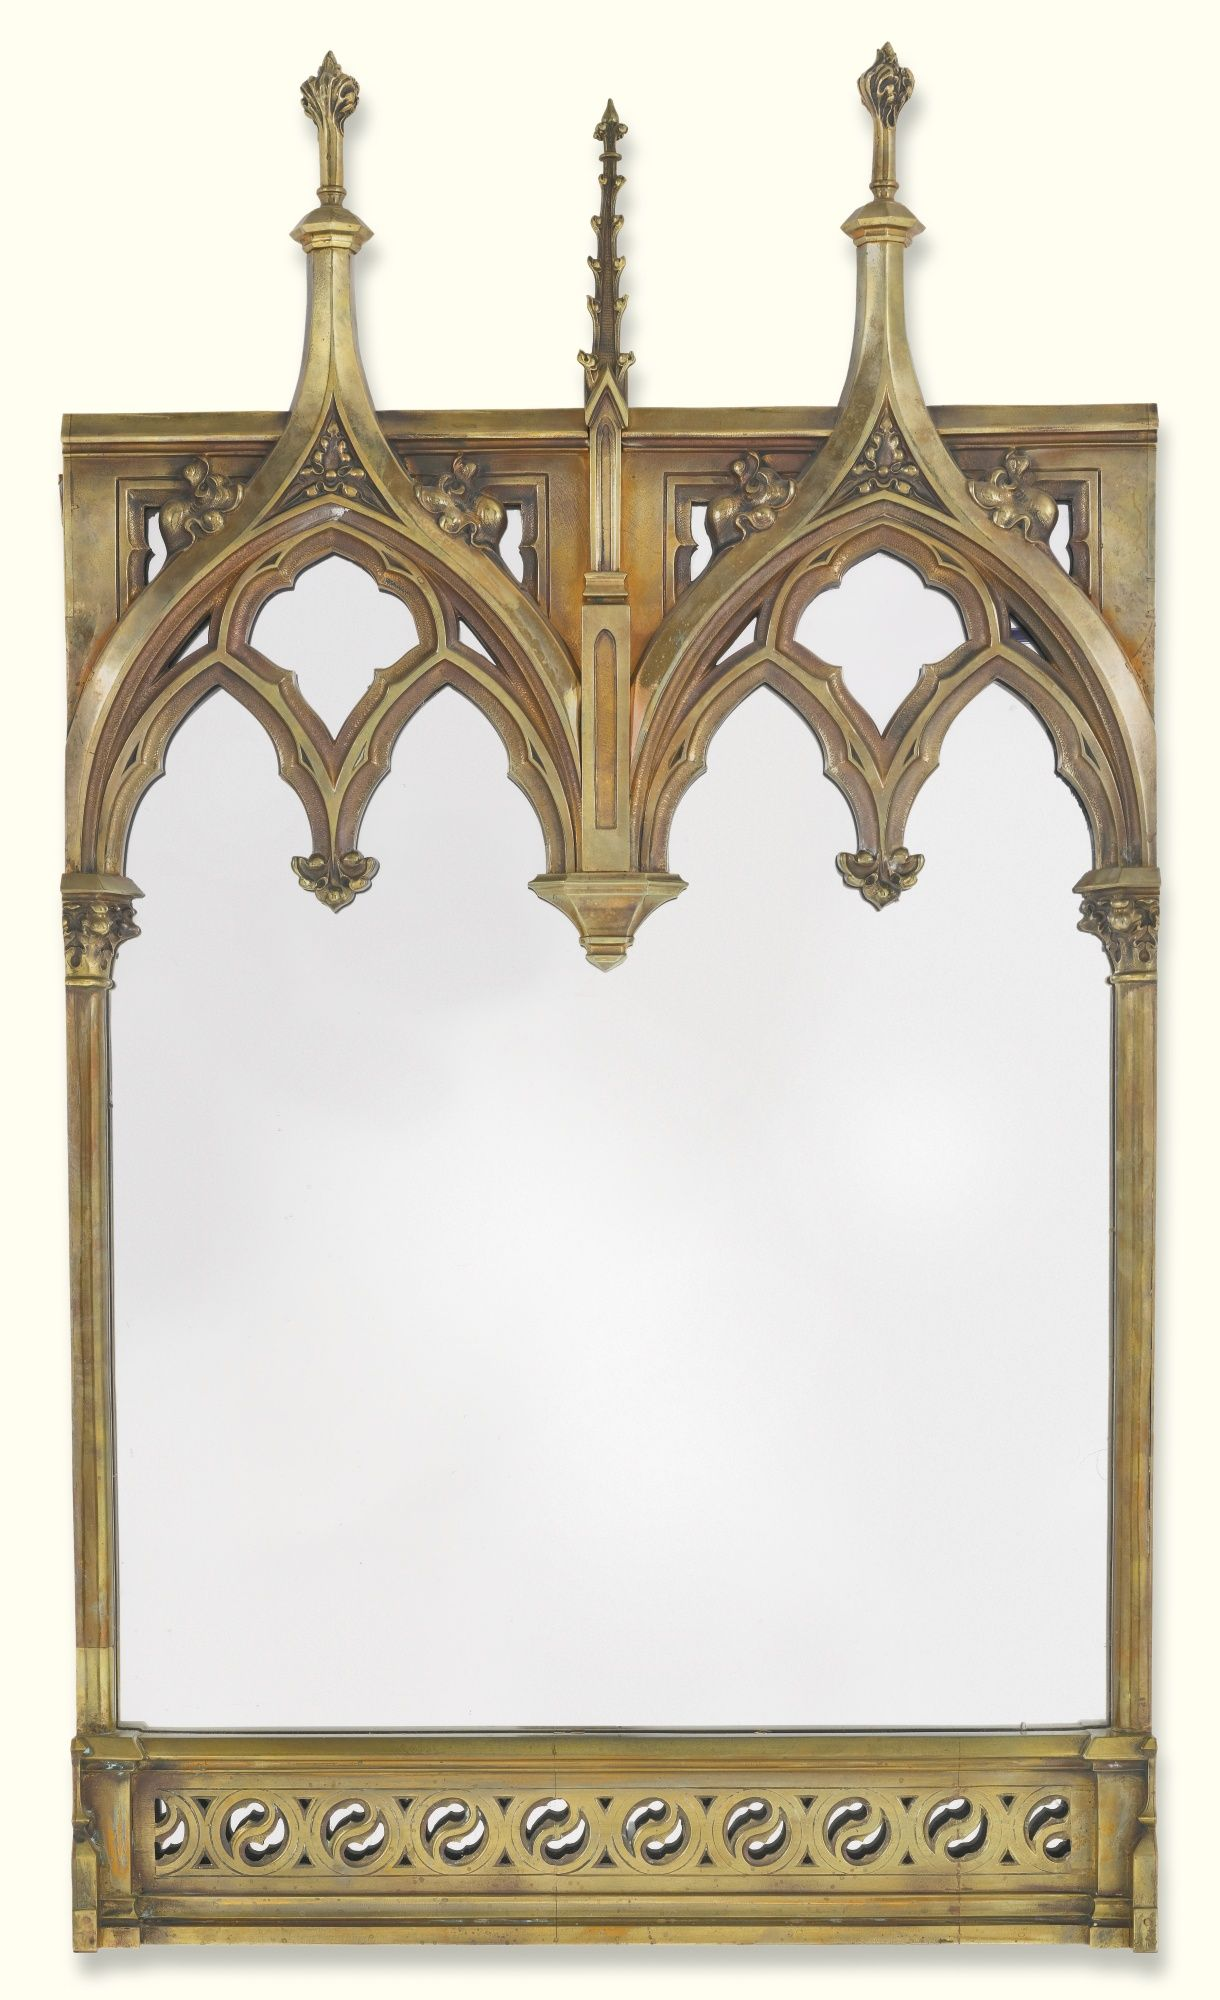 Gothic home furniture together with four hands furniture sale besides - A Victorian Gothic Revival Brass Frame Now Mounted As A Mirror Late 19th Century